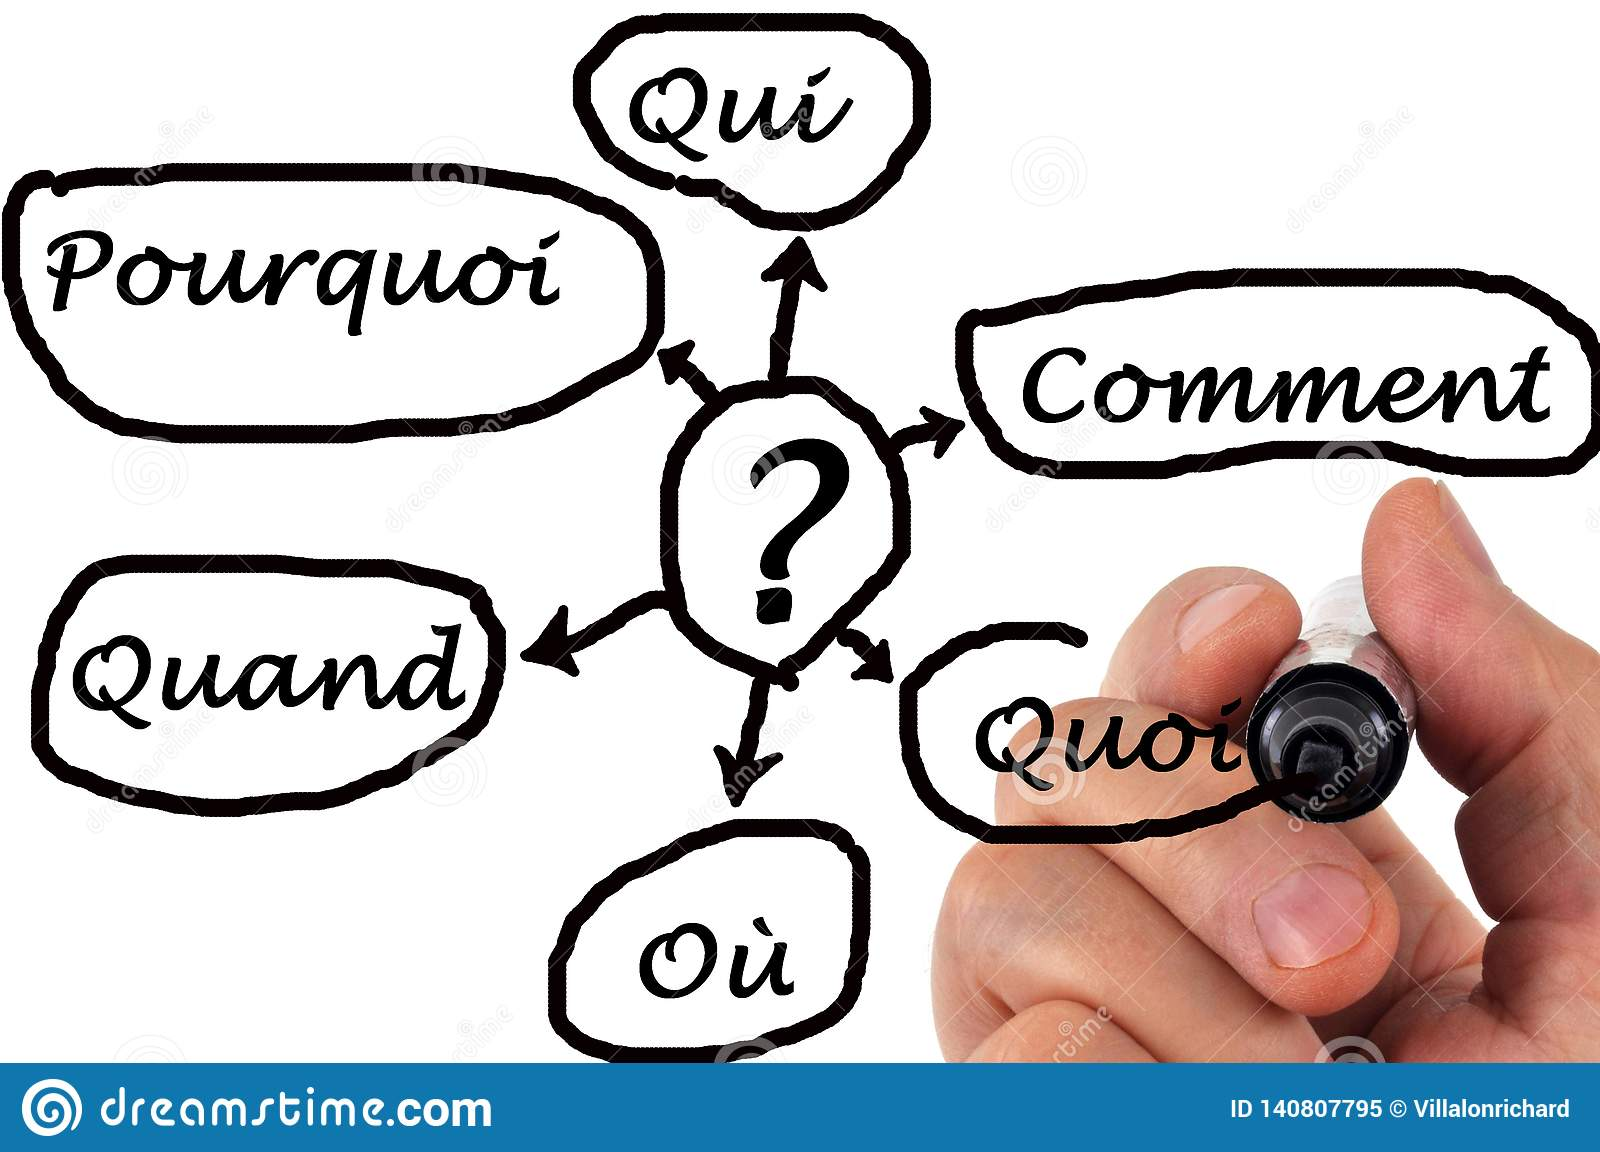 Several questions written in French